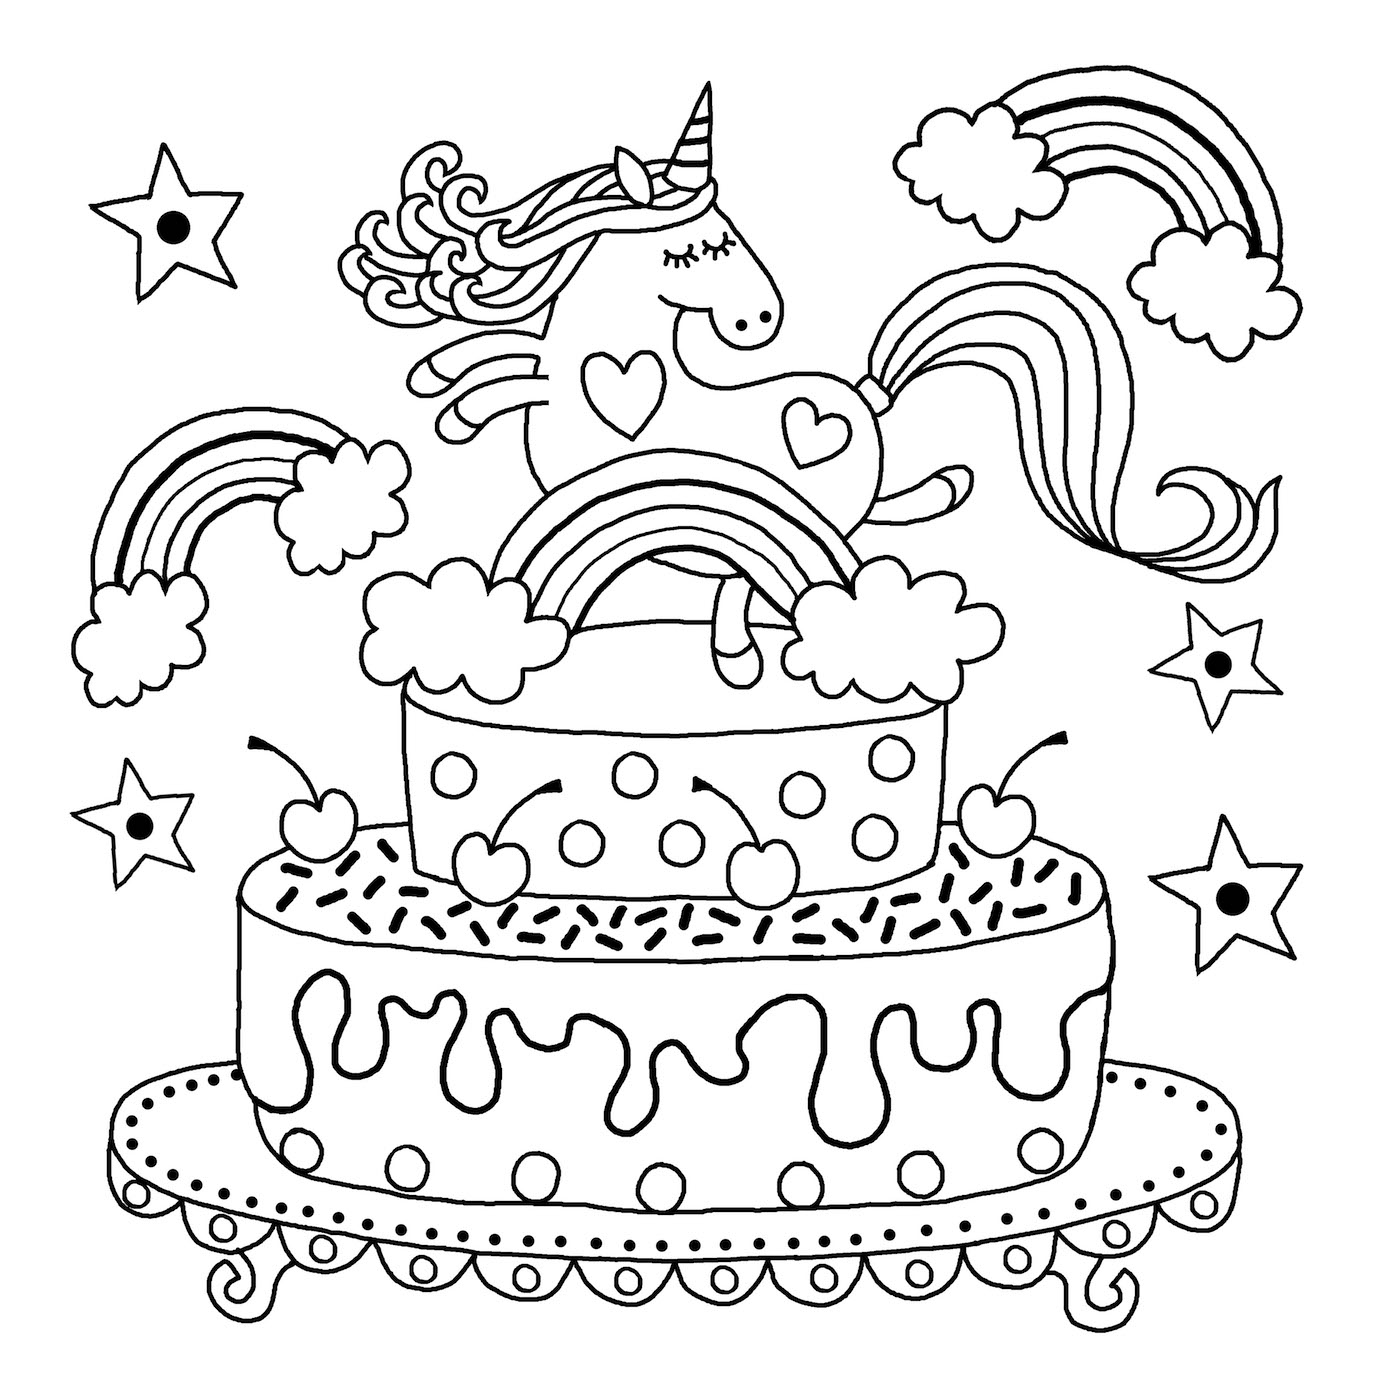 coloring page of unicorn cute unicorn with watermelon coloring pages for you coloring page unicorn of